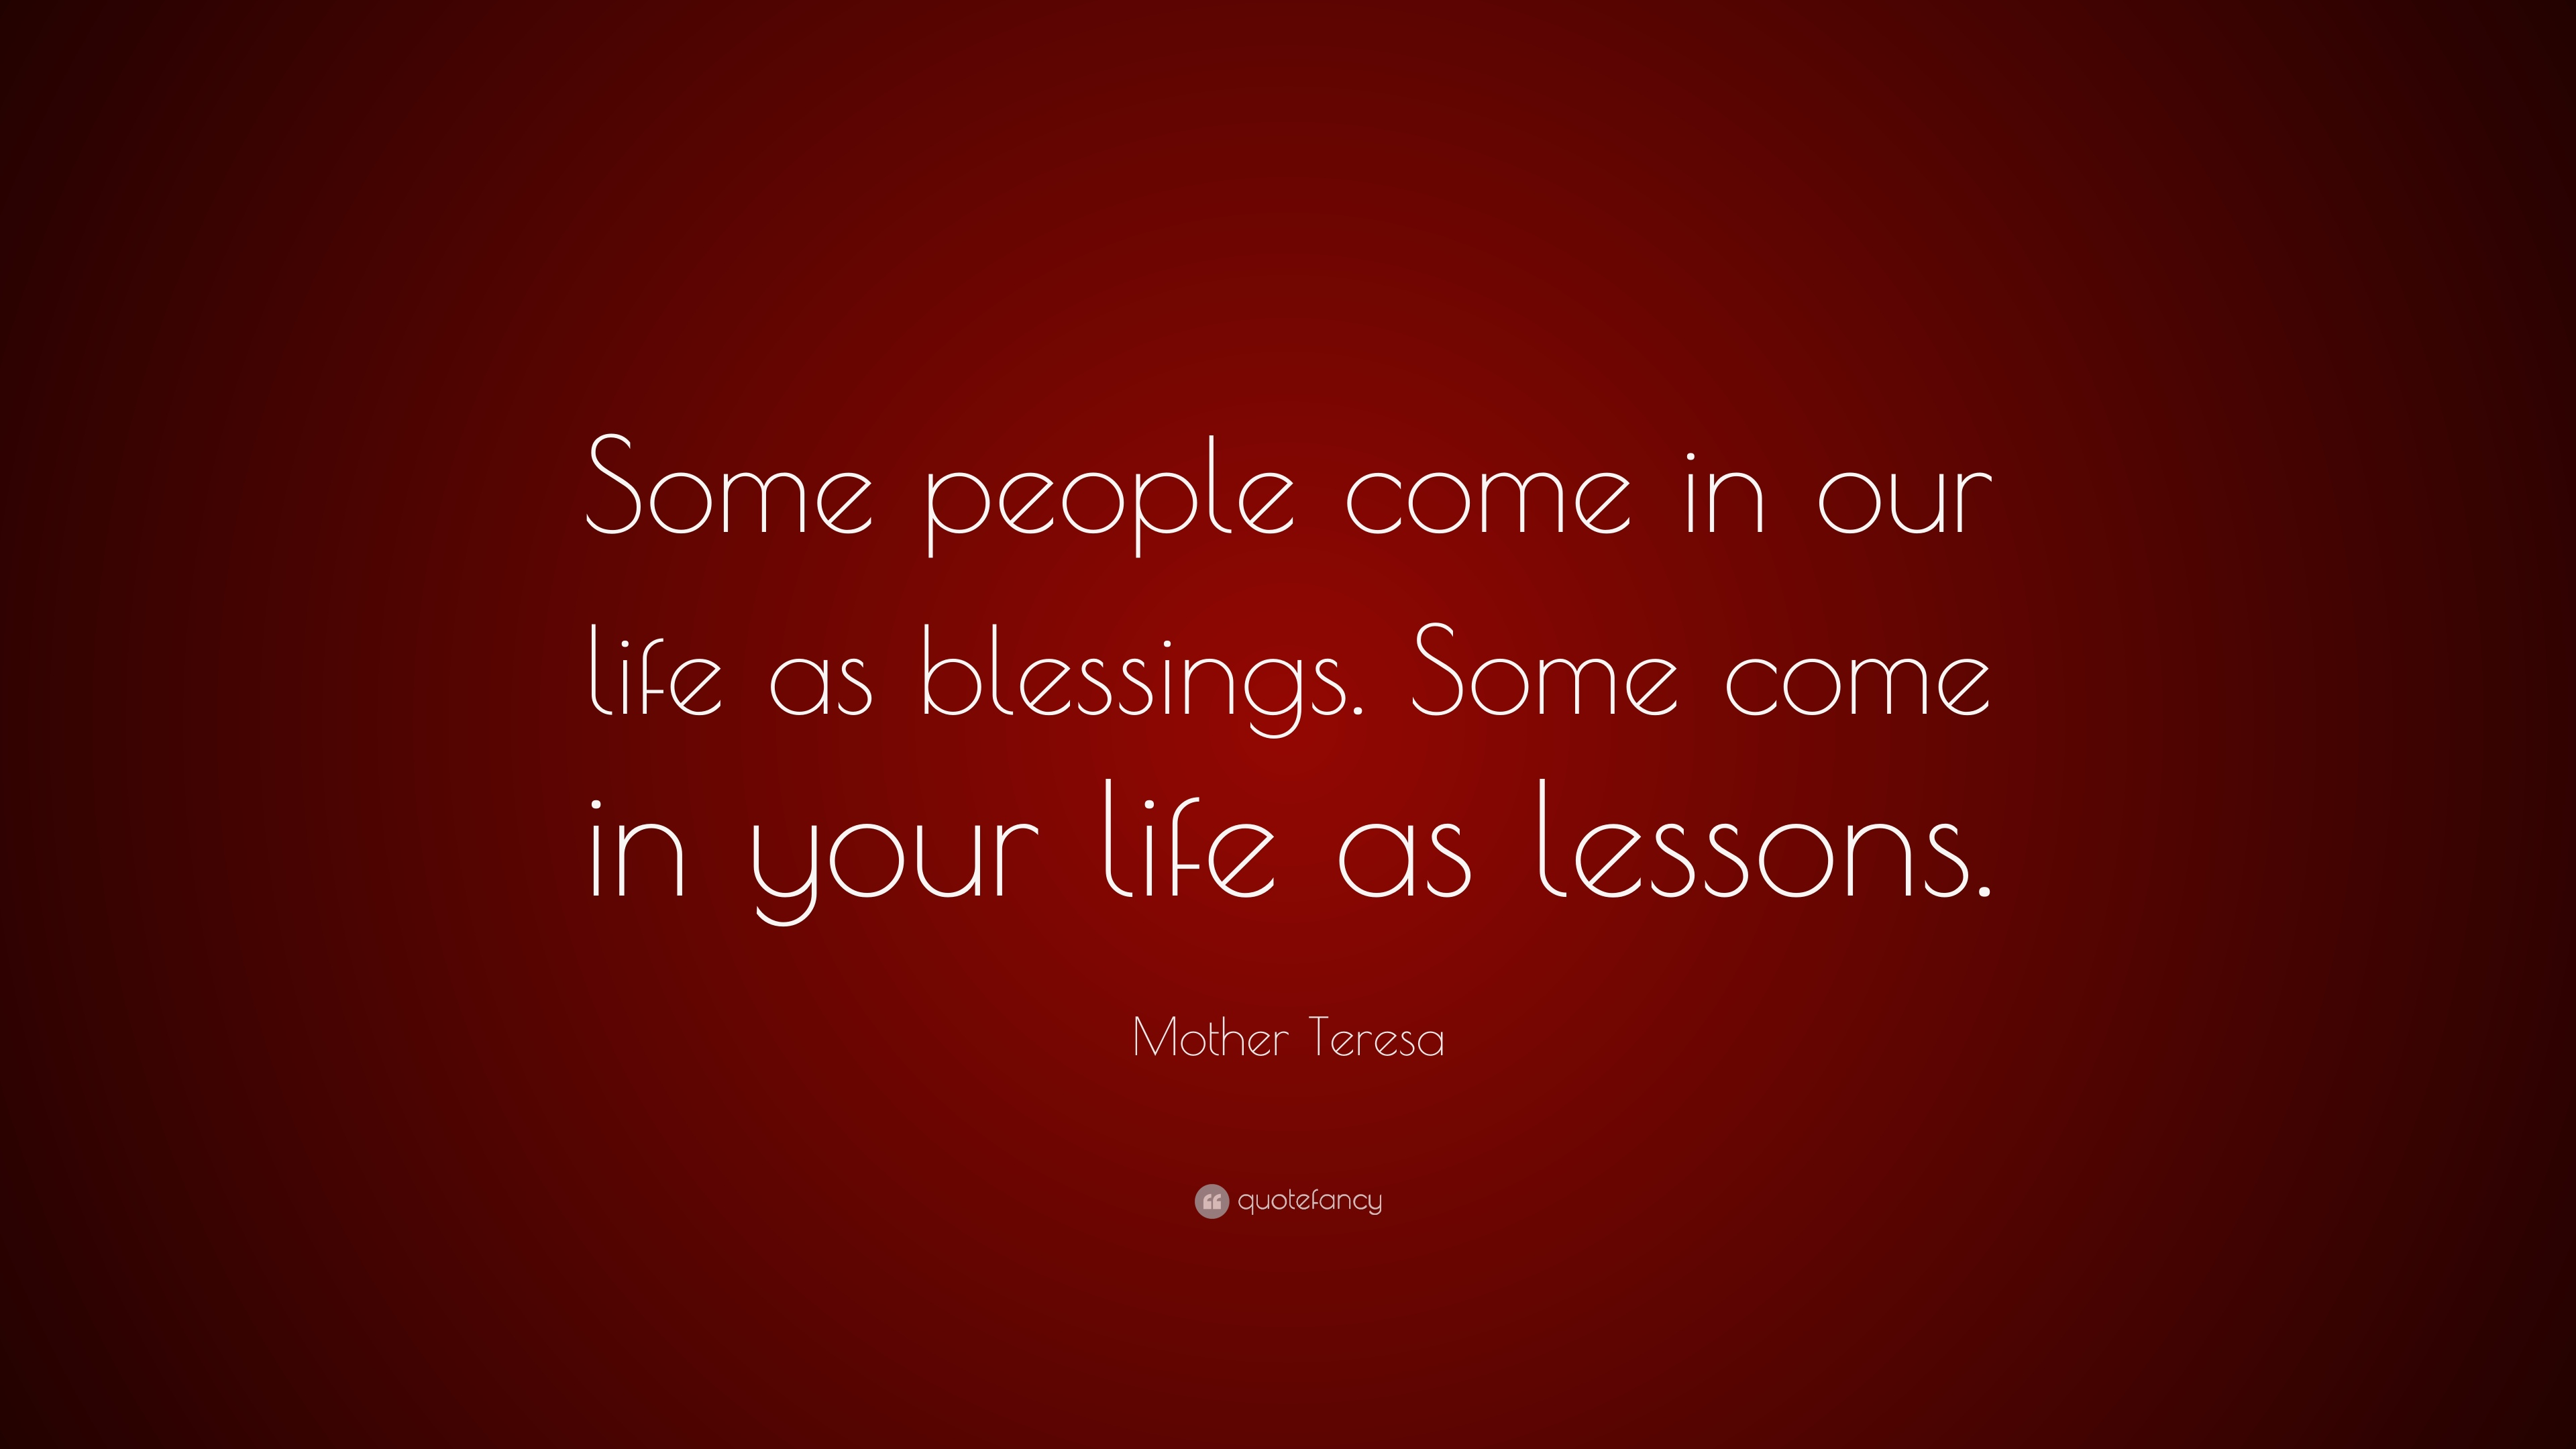 Mother Teresa Quote: U201cSome People Come In Our Life As Blessings. Some Come